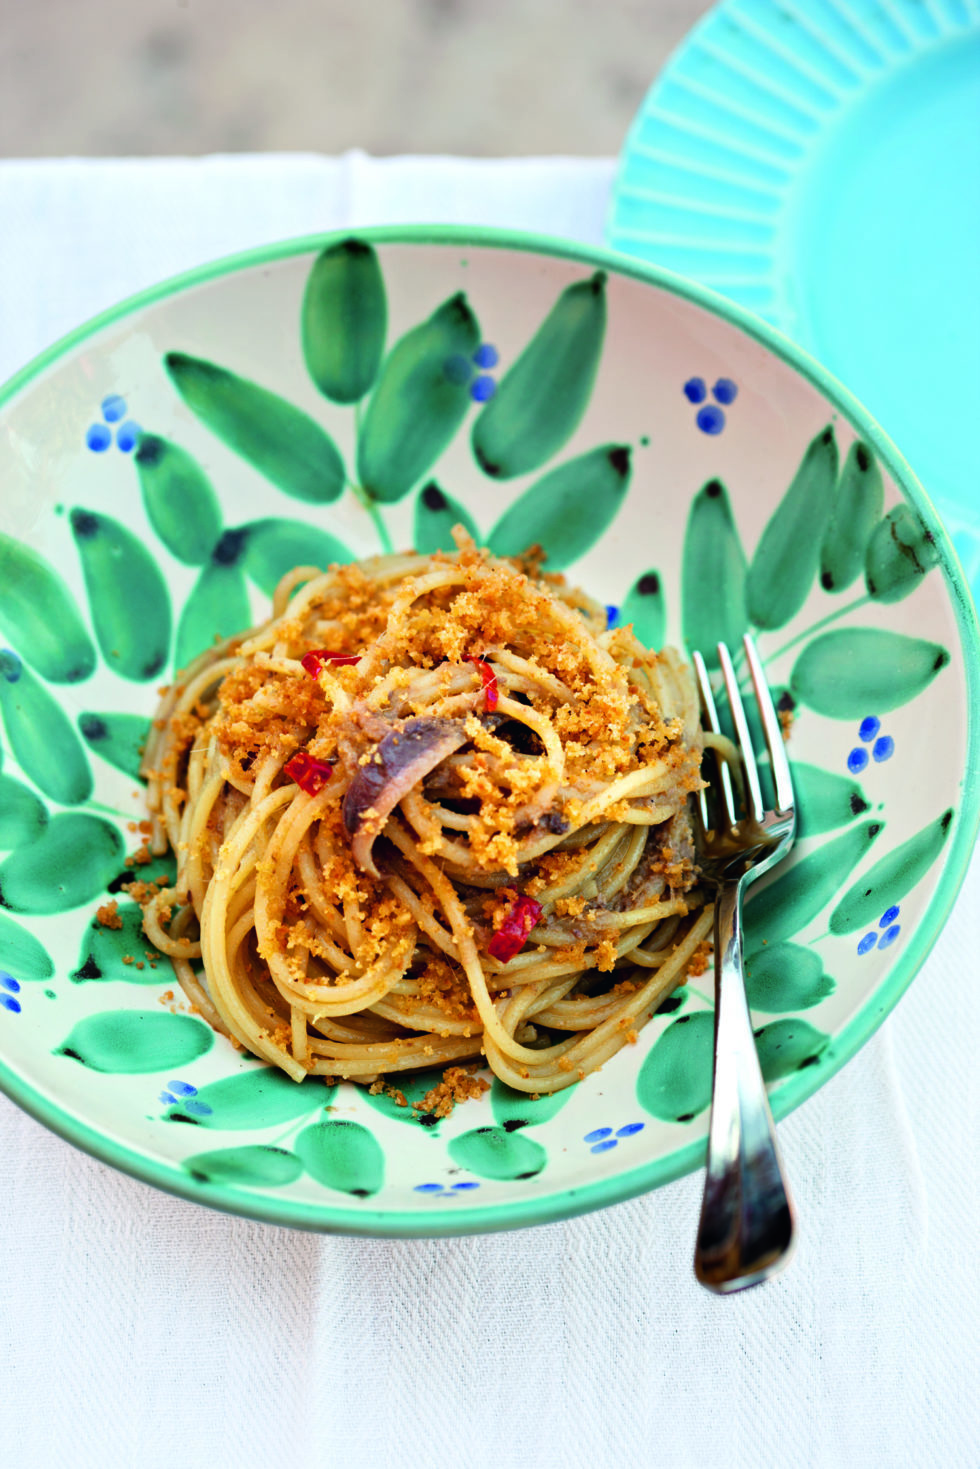 Pasta con acciughe e mollica (Pasta with anchovies and breadcrumbs)